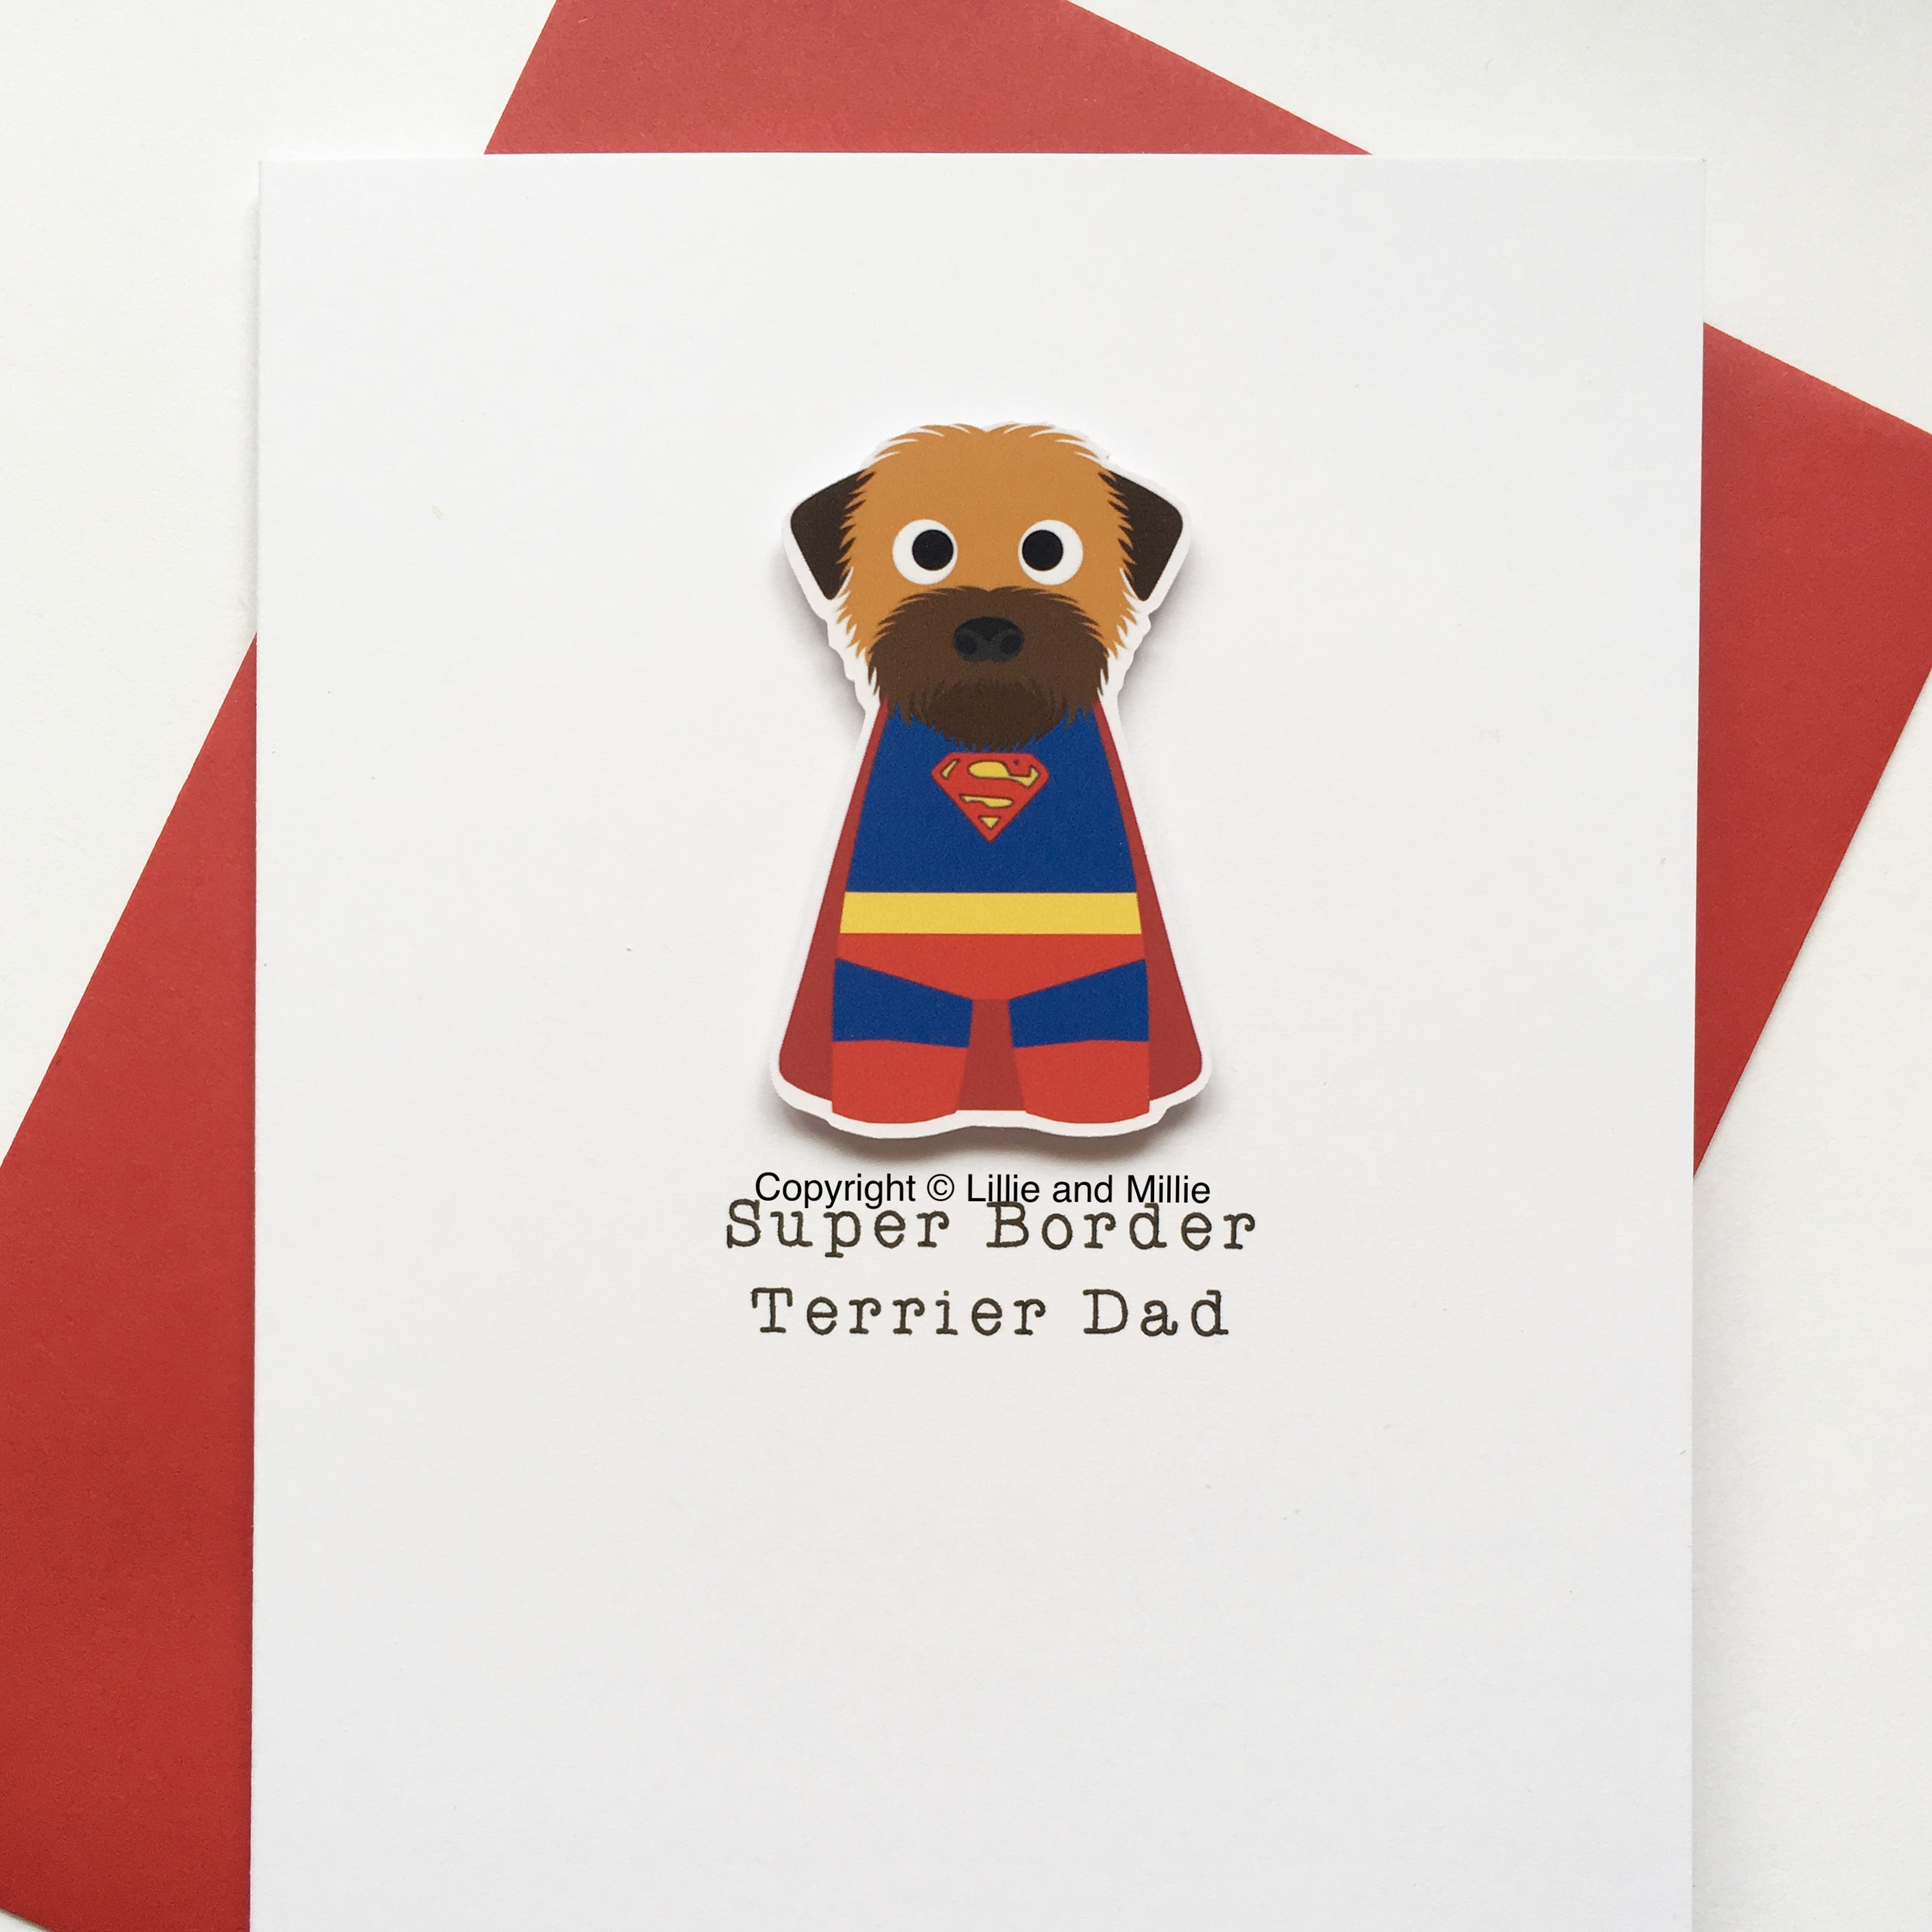 Cute and Cuddly Super Border Terrier Dad SALE Card